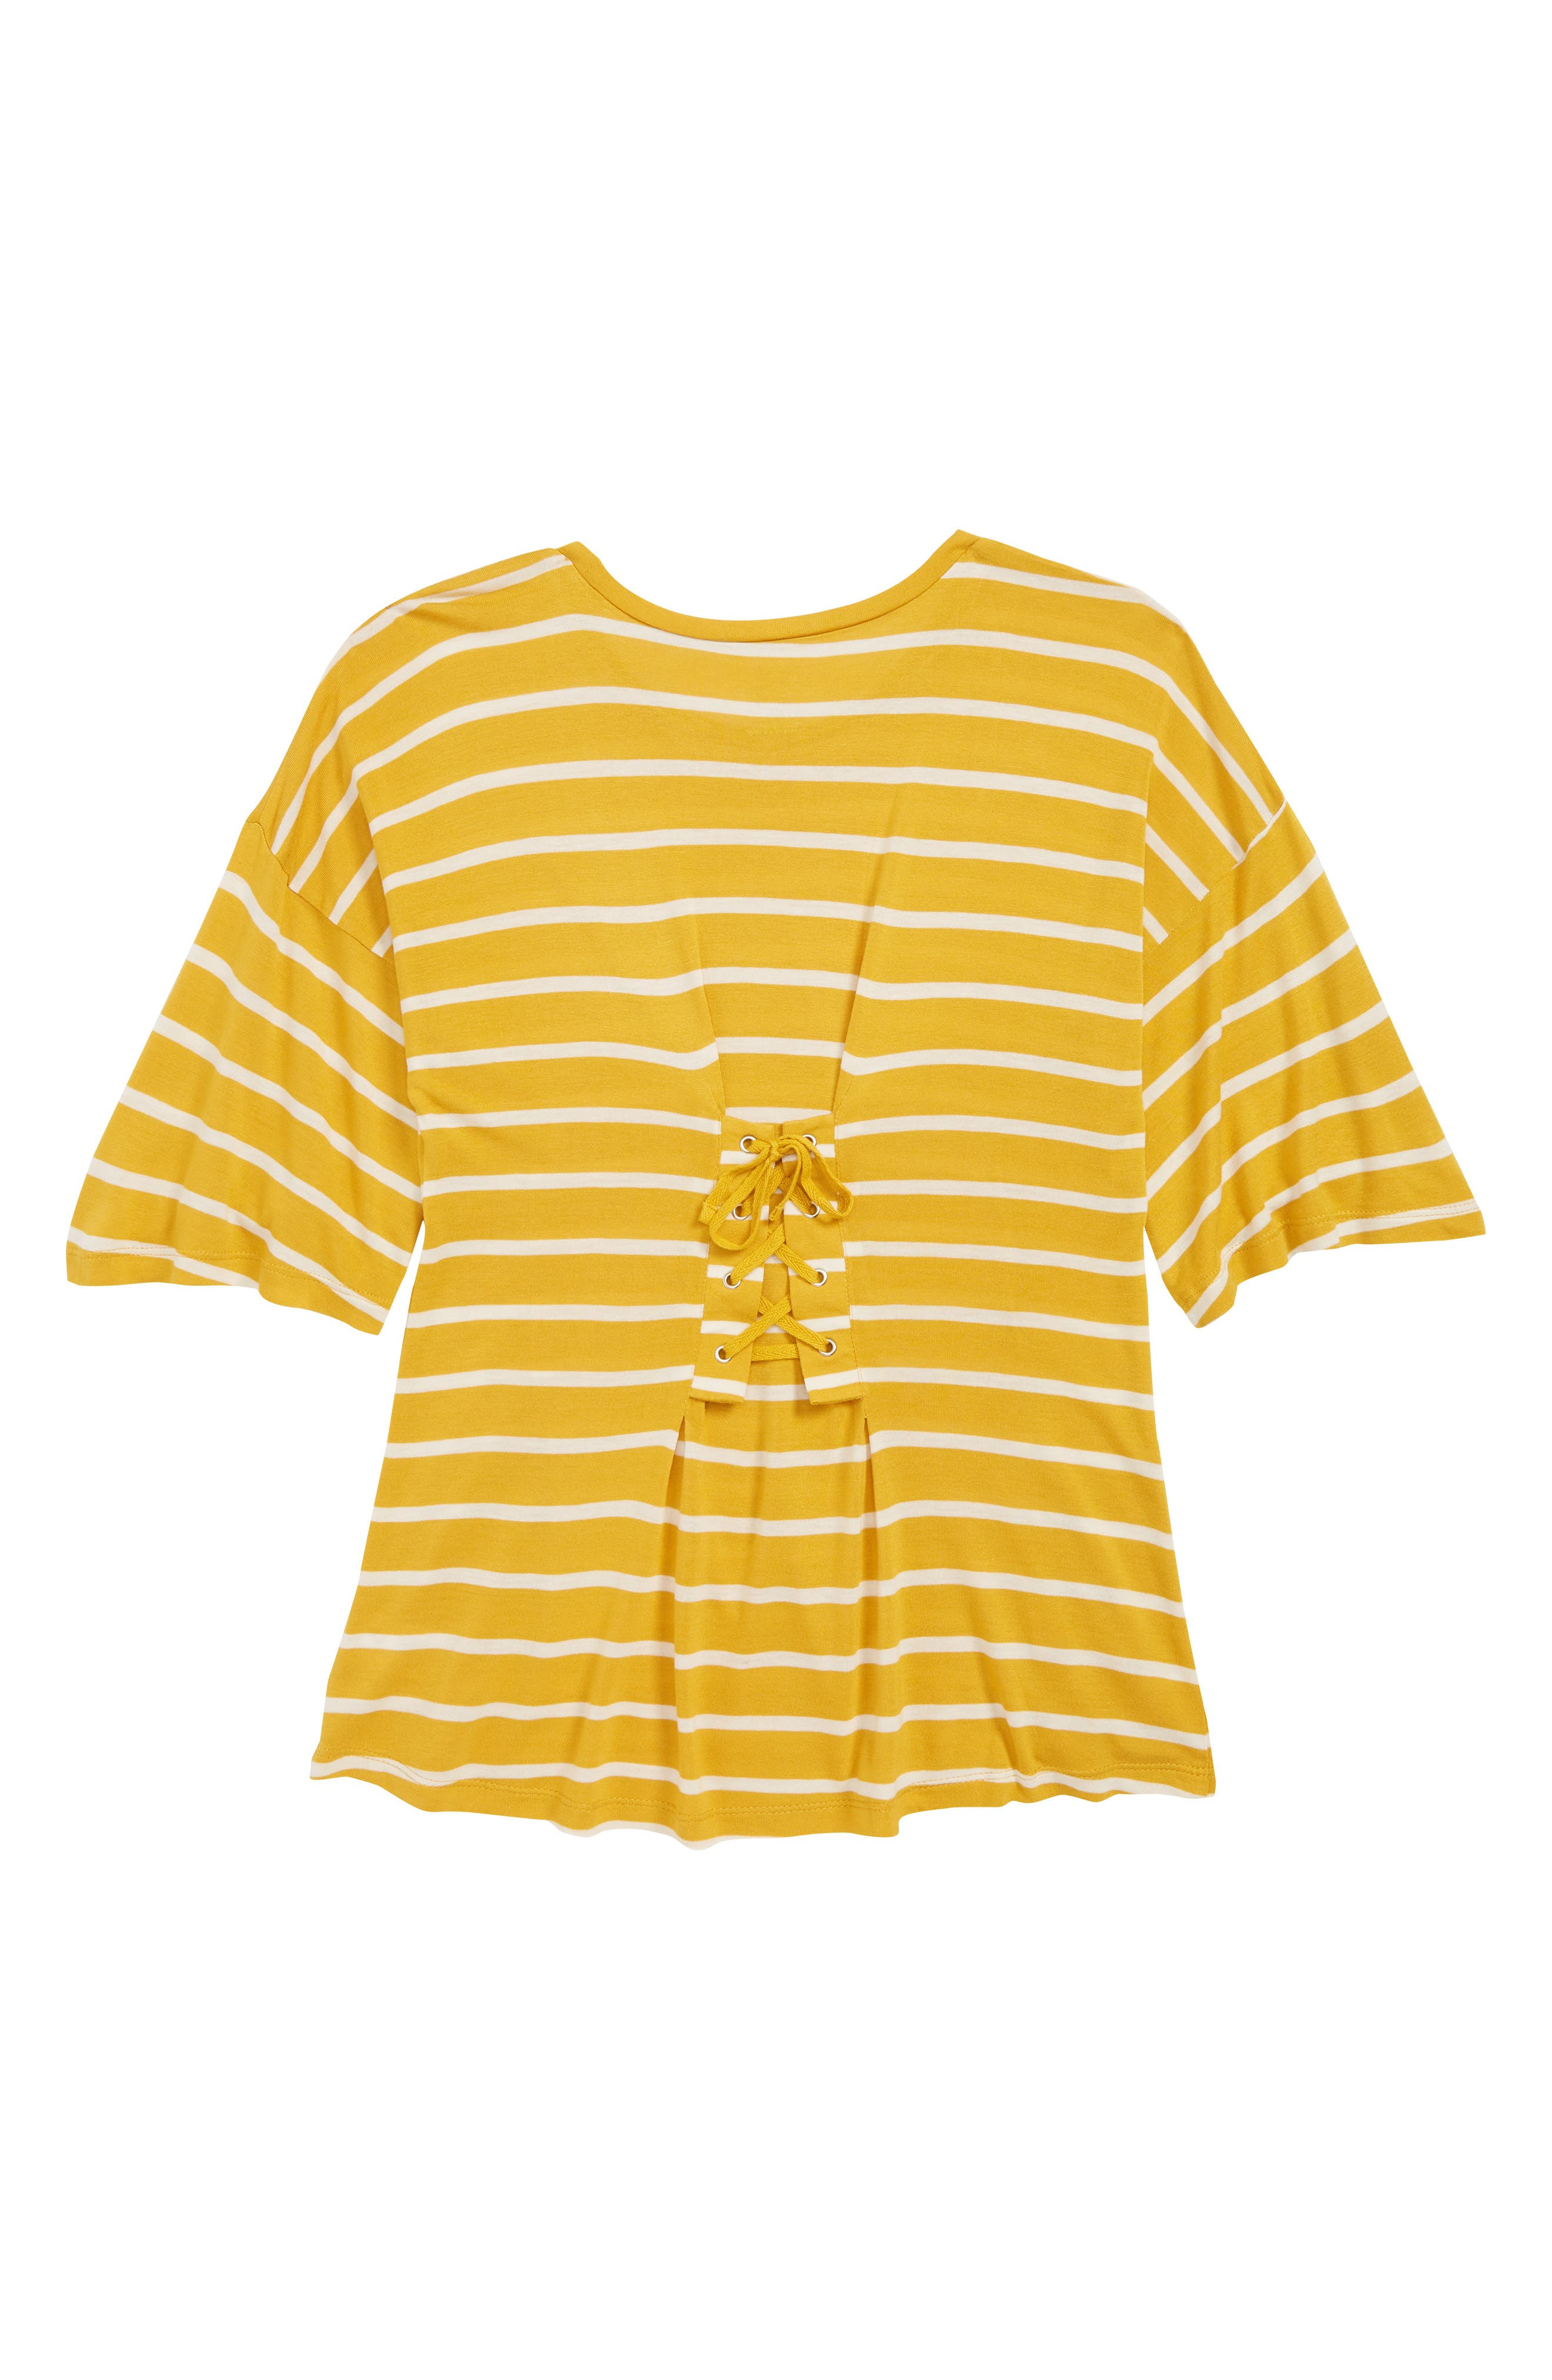 Lace-Up Back Tee,                             Alternate thumbnail 2, color,                             YELLOW MINERAL- IVORY STRIPE